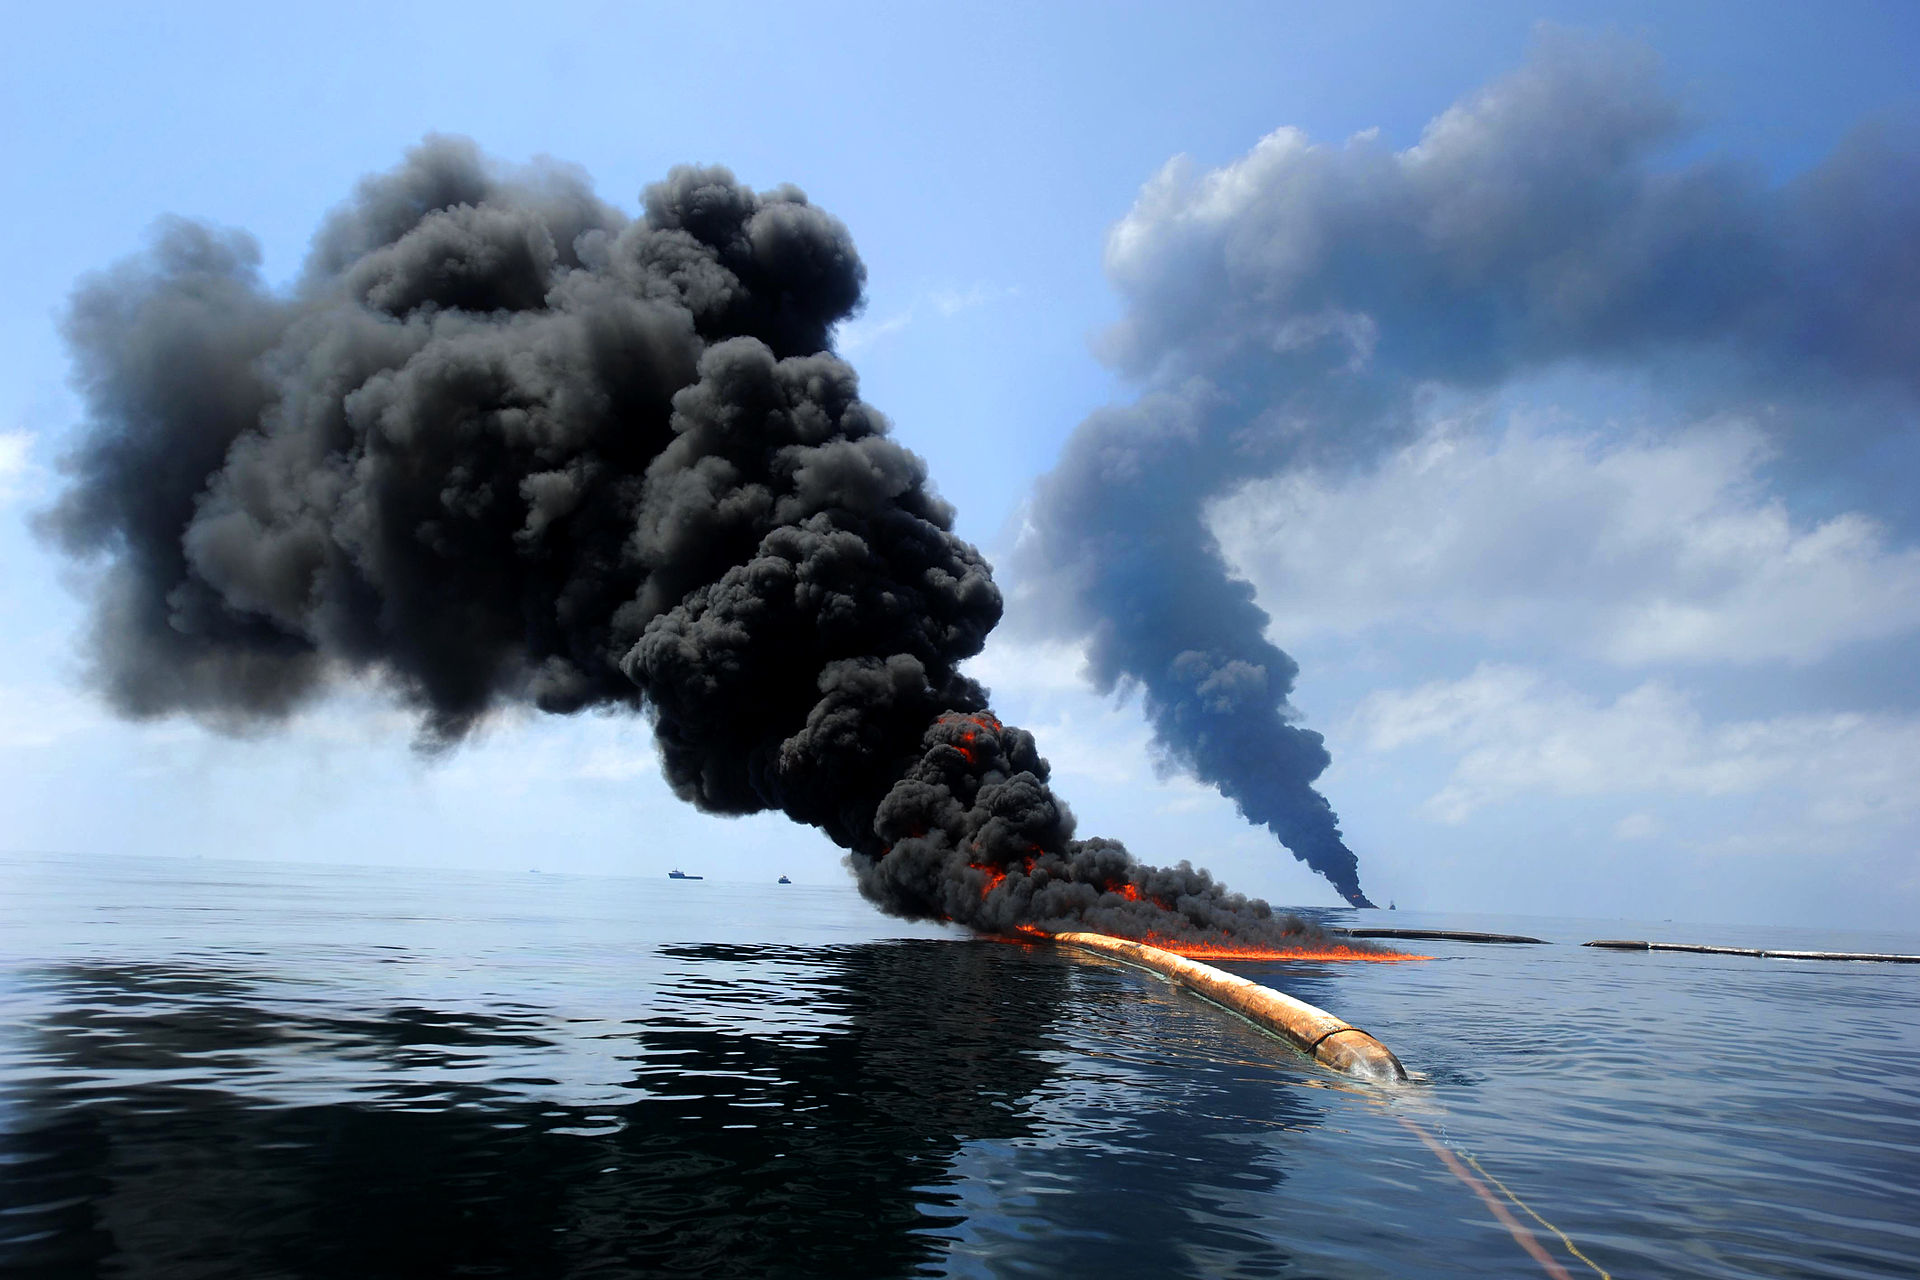 british petroleum and oil spill The deepwater horizon disaster the bp oil spill otherwise known as the deepwater horizon oil spill is considered the largest marine related spill in the oil and gas industry and it occurred in the mexican gulf from around the 20th of april back in 2010.